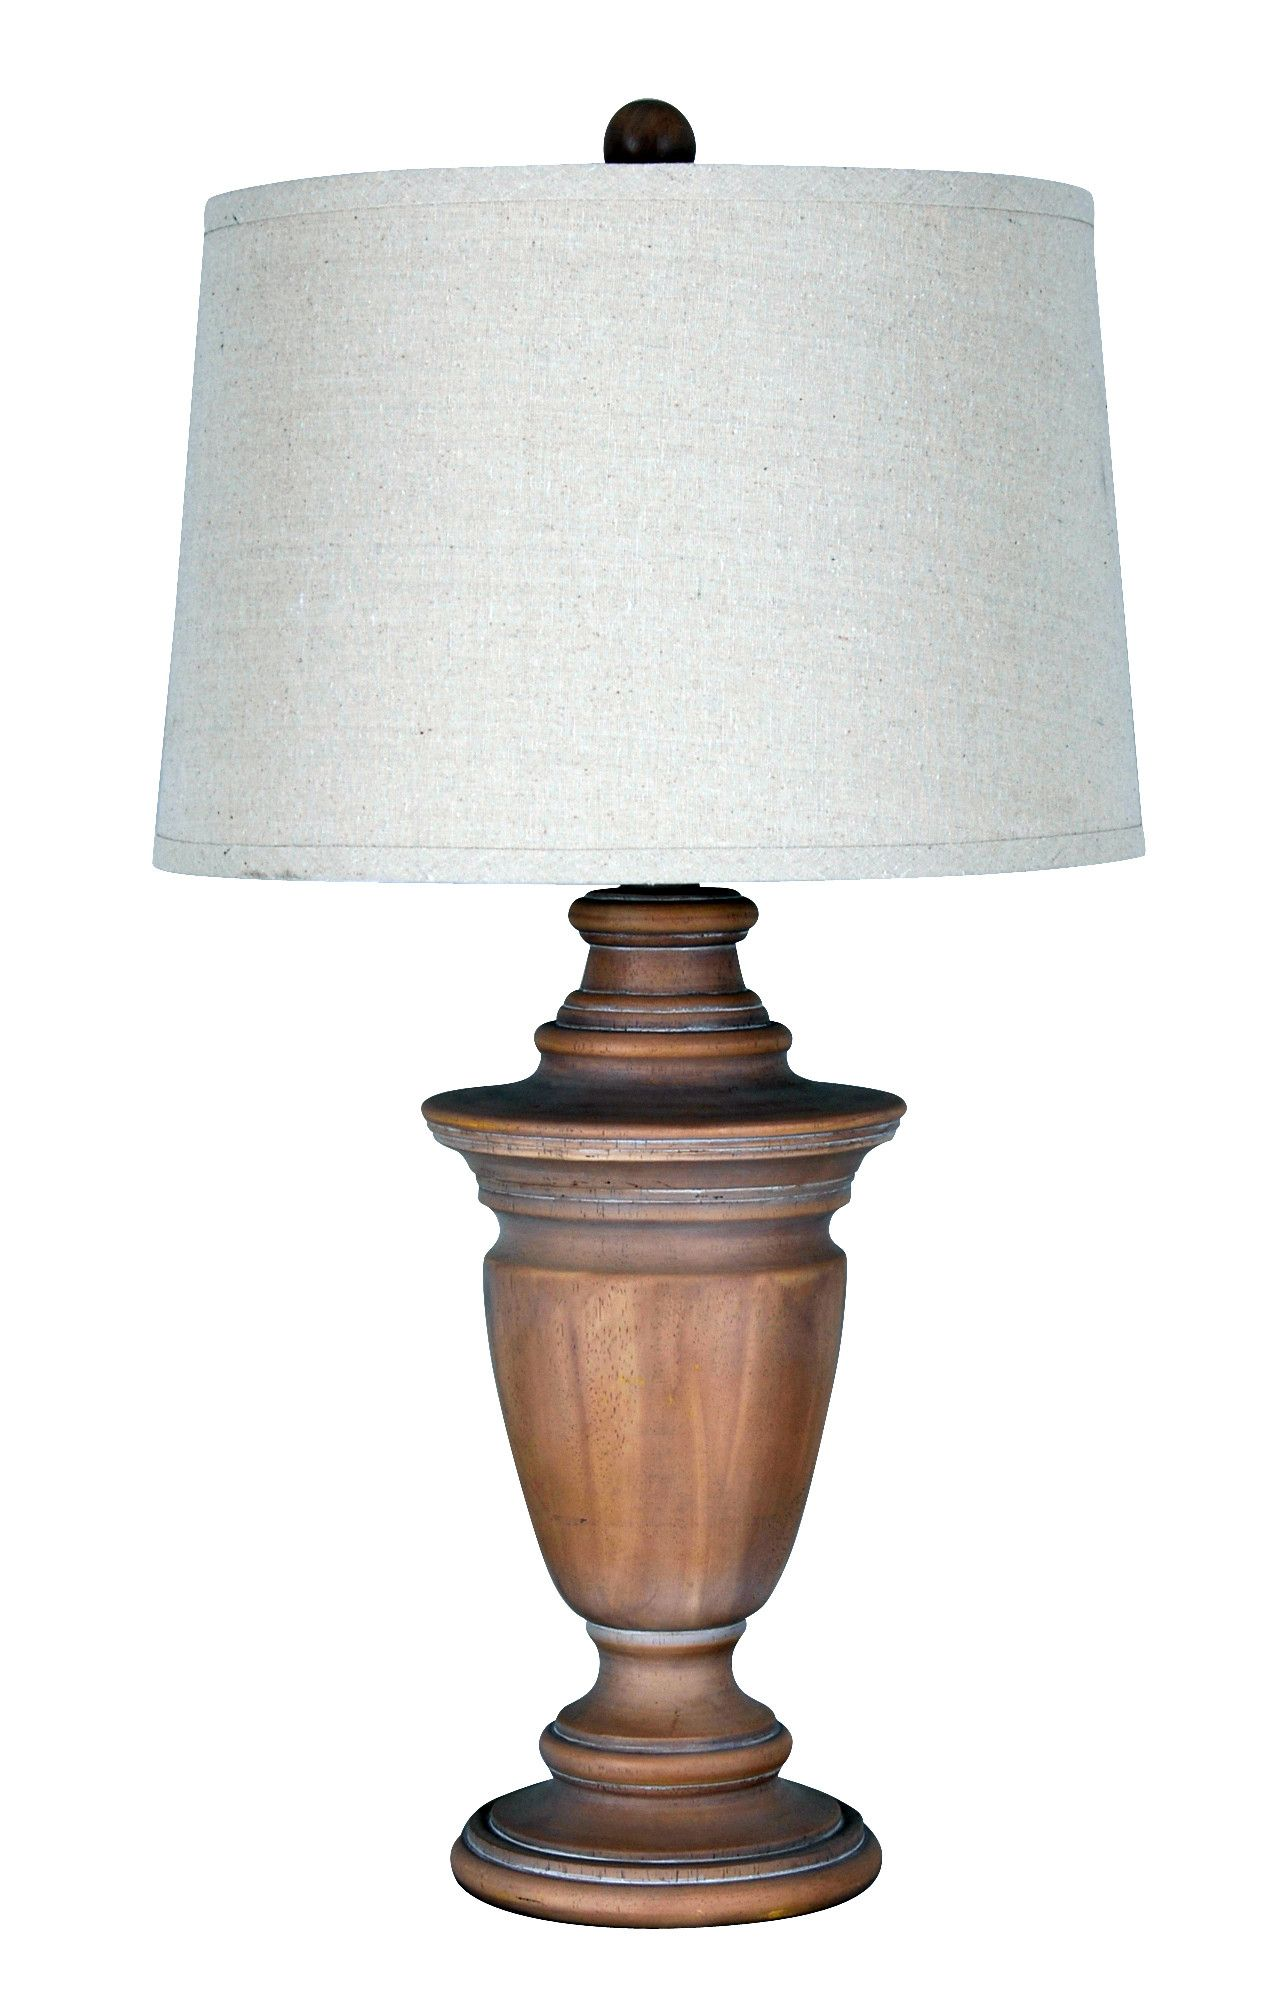 Table Lamp With Drum Shade I Wayfair Table Lamp Wood Lamps Living Room Farmhouse Table Lamps